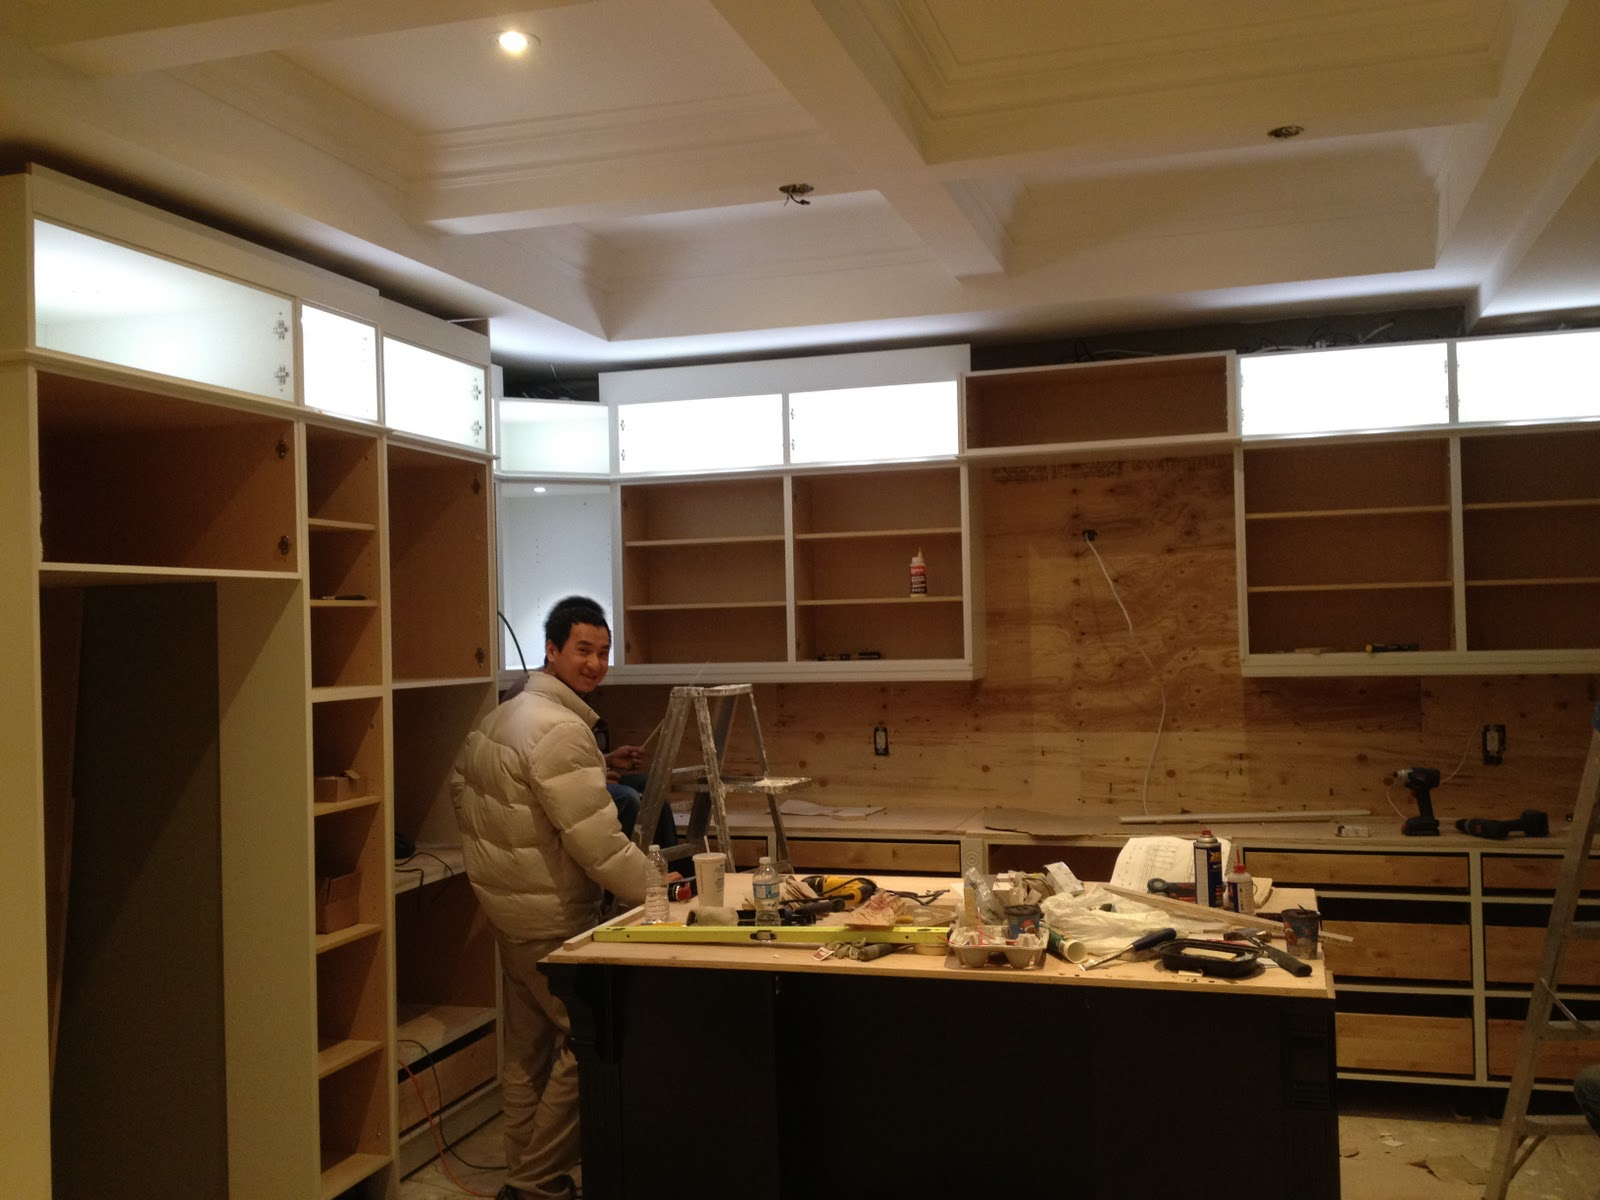 Lovely Bax Cabinets Installers Are Working Hard Lights And Crown Look Amazing